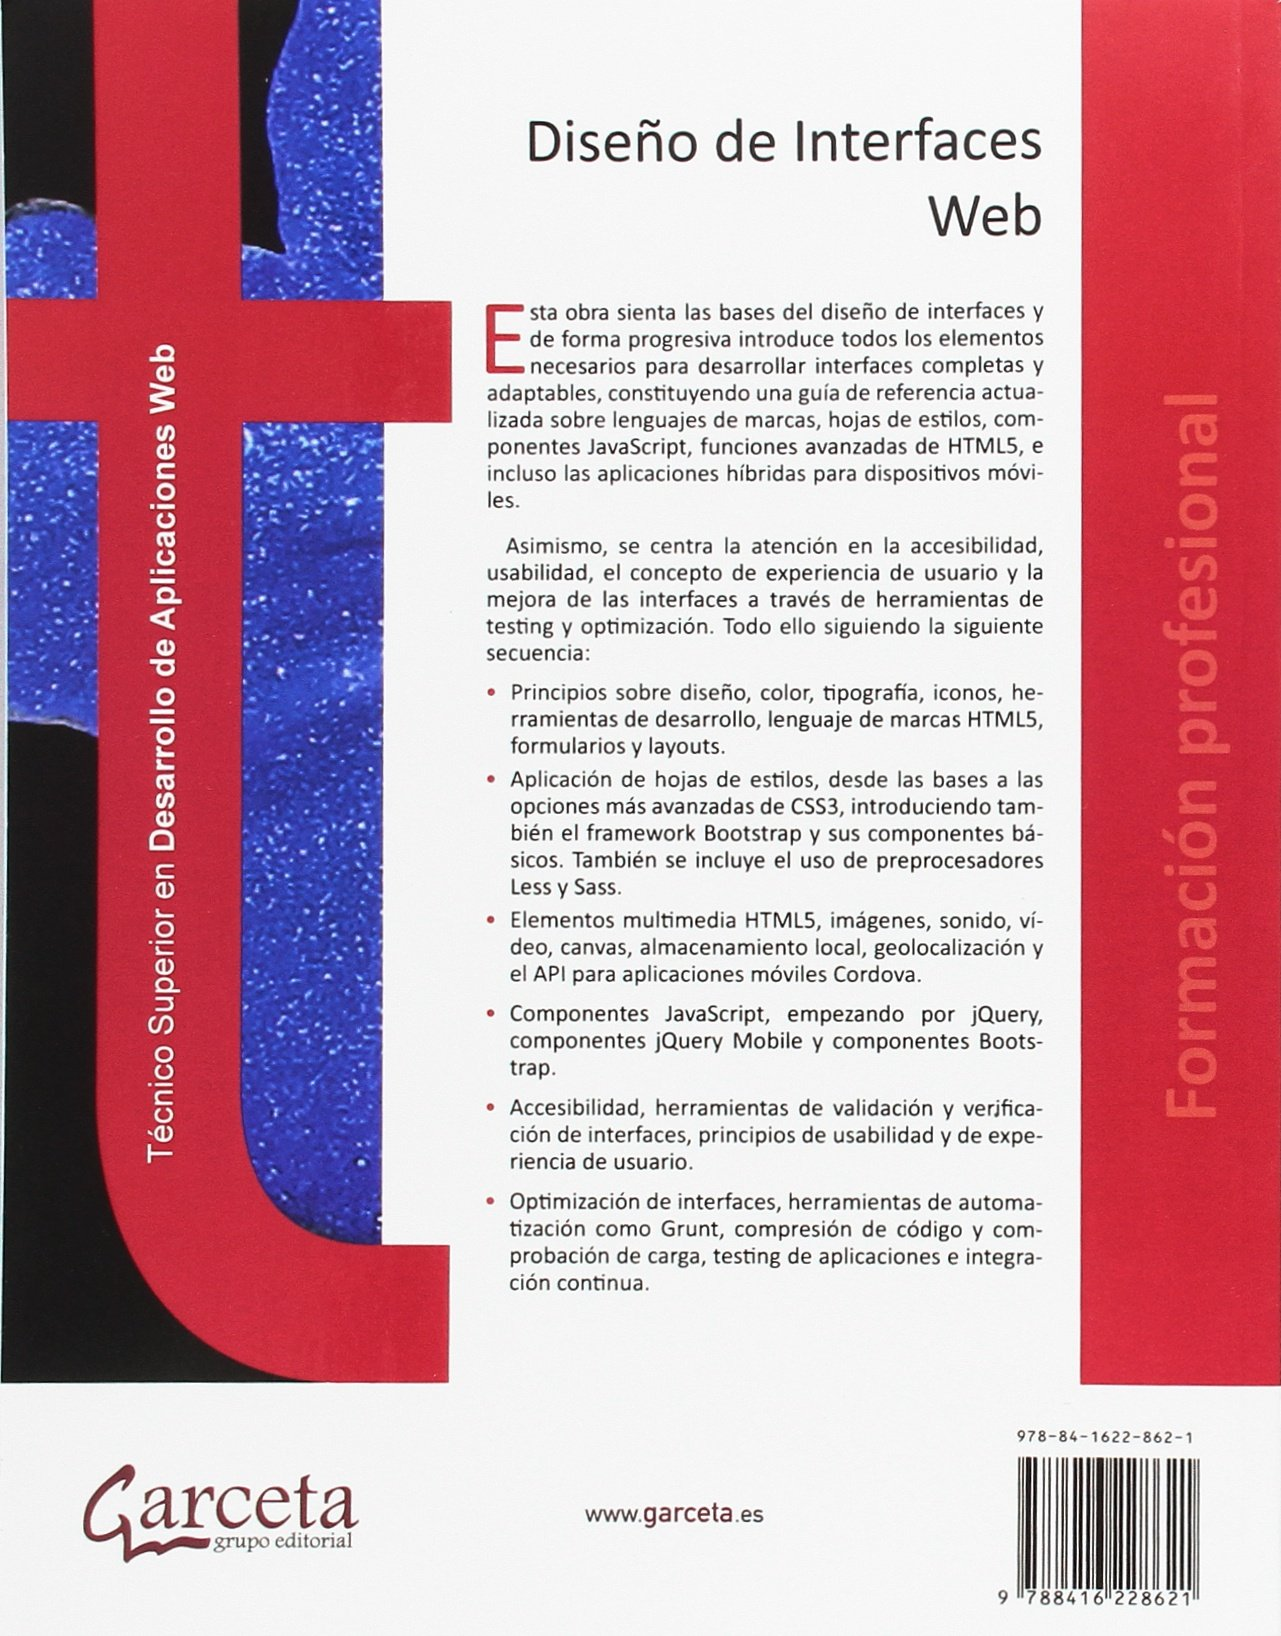 Diseño de Interfaces Web: Amazon.es: Eugenia Pérez Martinez, Peyo Xavier Altadill Izura: Libros